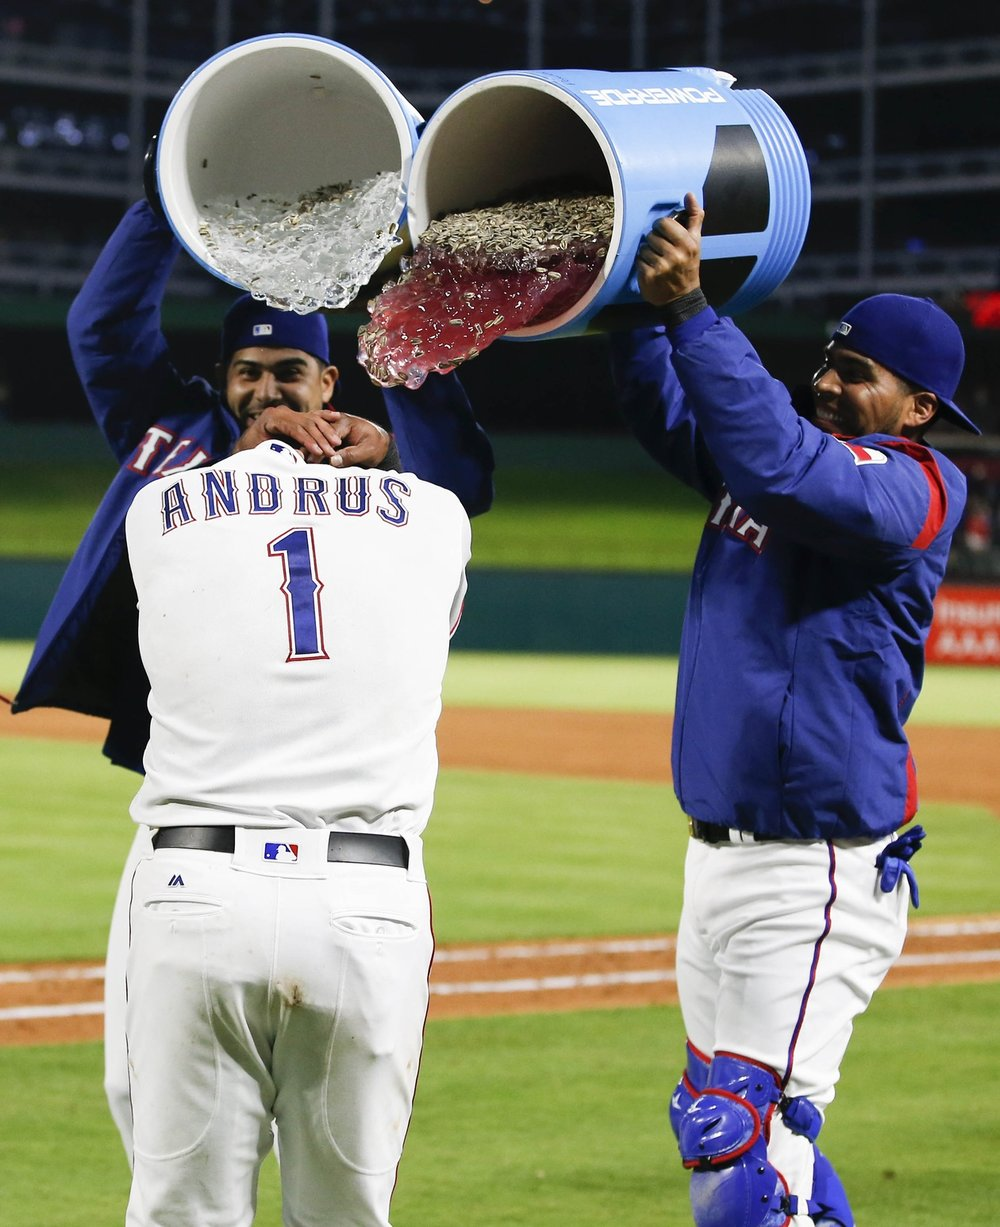 Elvis Andrus hits game winning single.